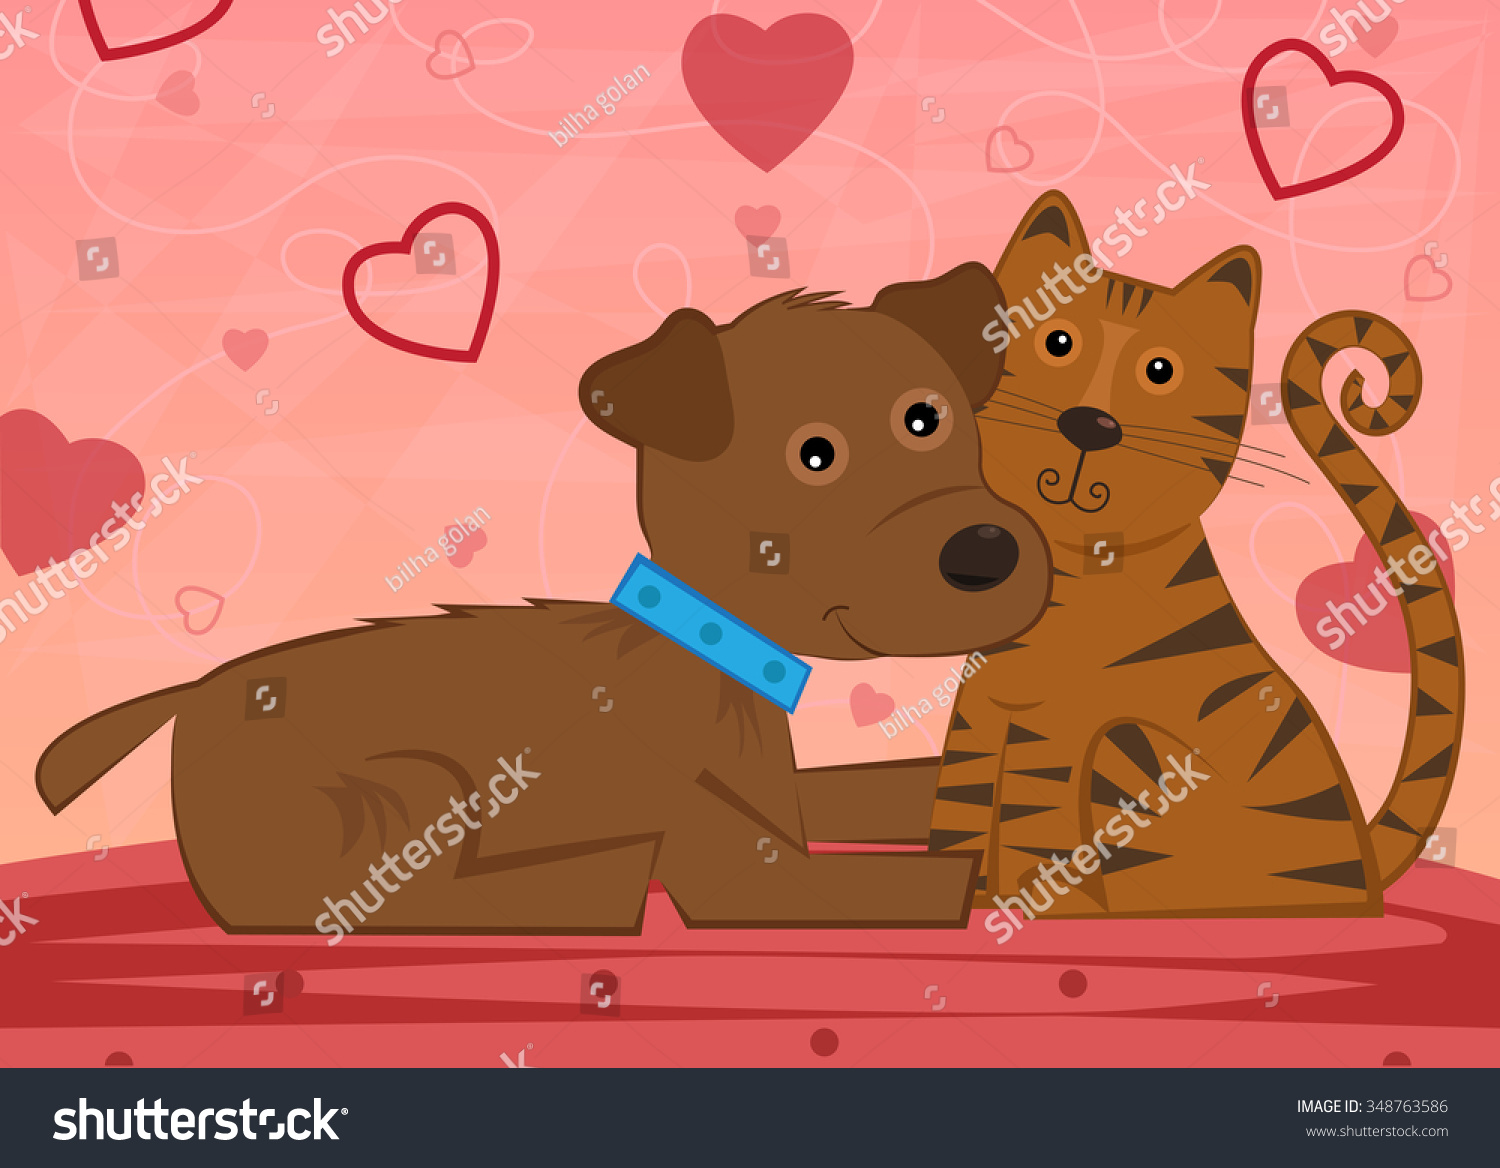 Beautiful Bear Brown Adorable Dog - stock-vector-dog-and-cat-cute-dog-and-a-cat-are-sitting-next-to-each-other-in-front-of-a-decorative-background-348763586  Snapshot_7717100  .jpg